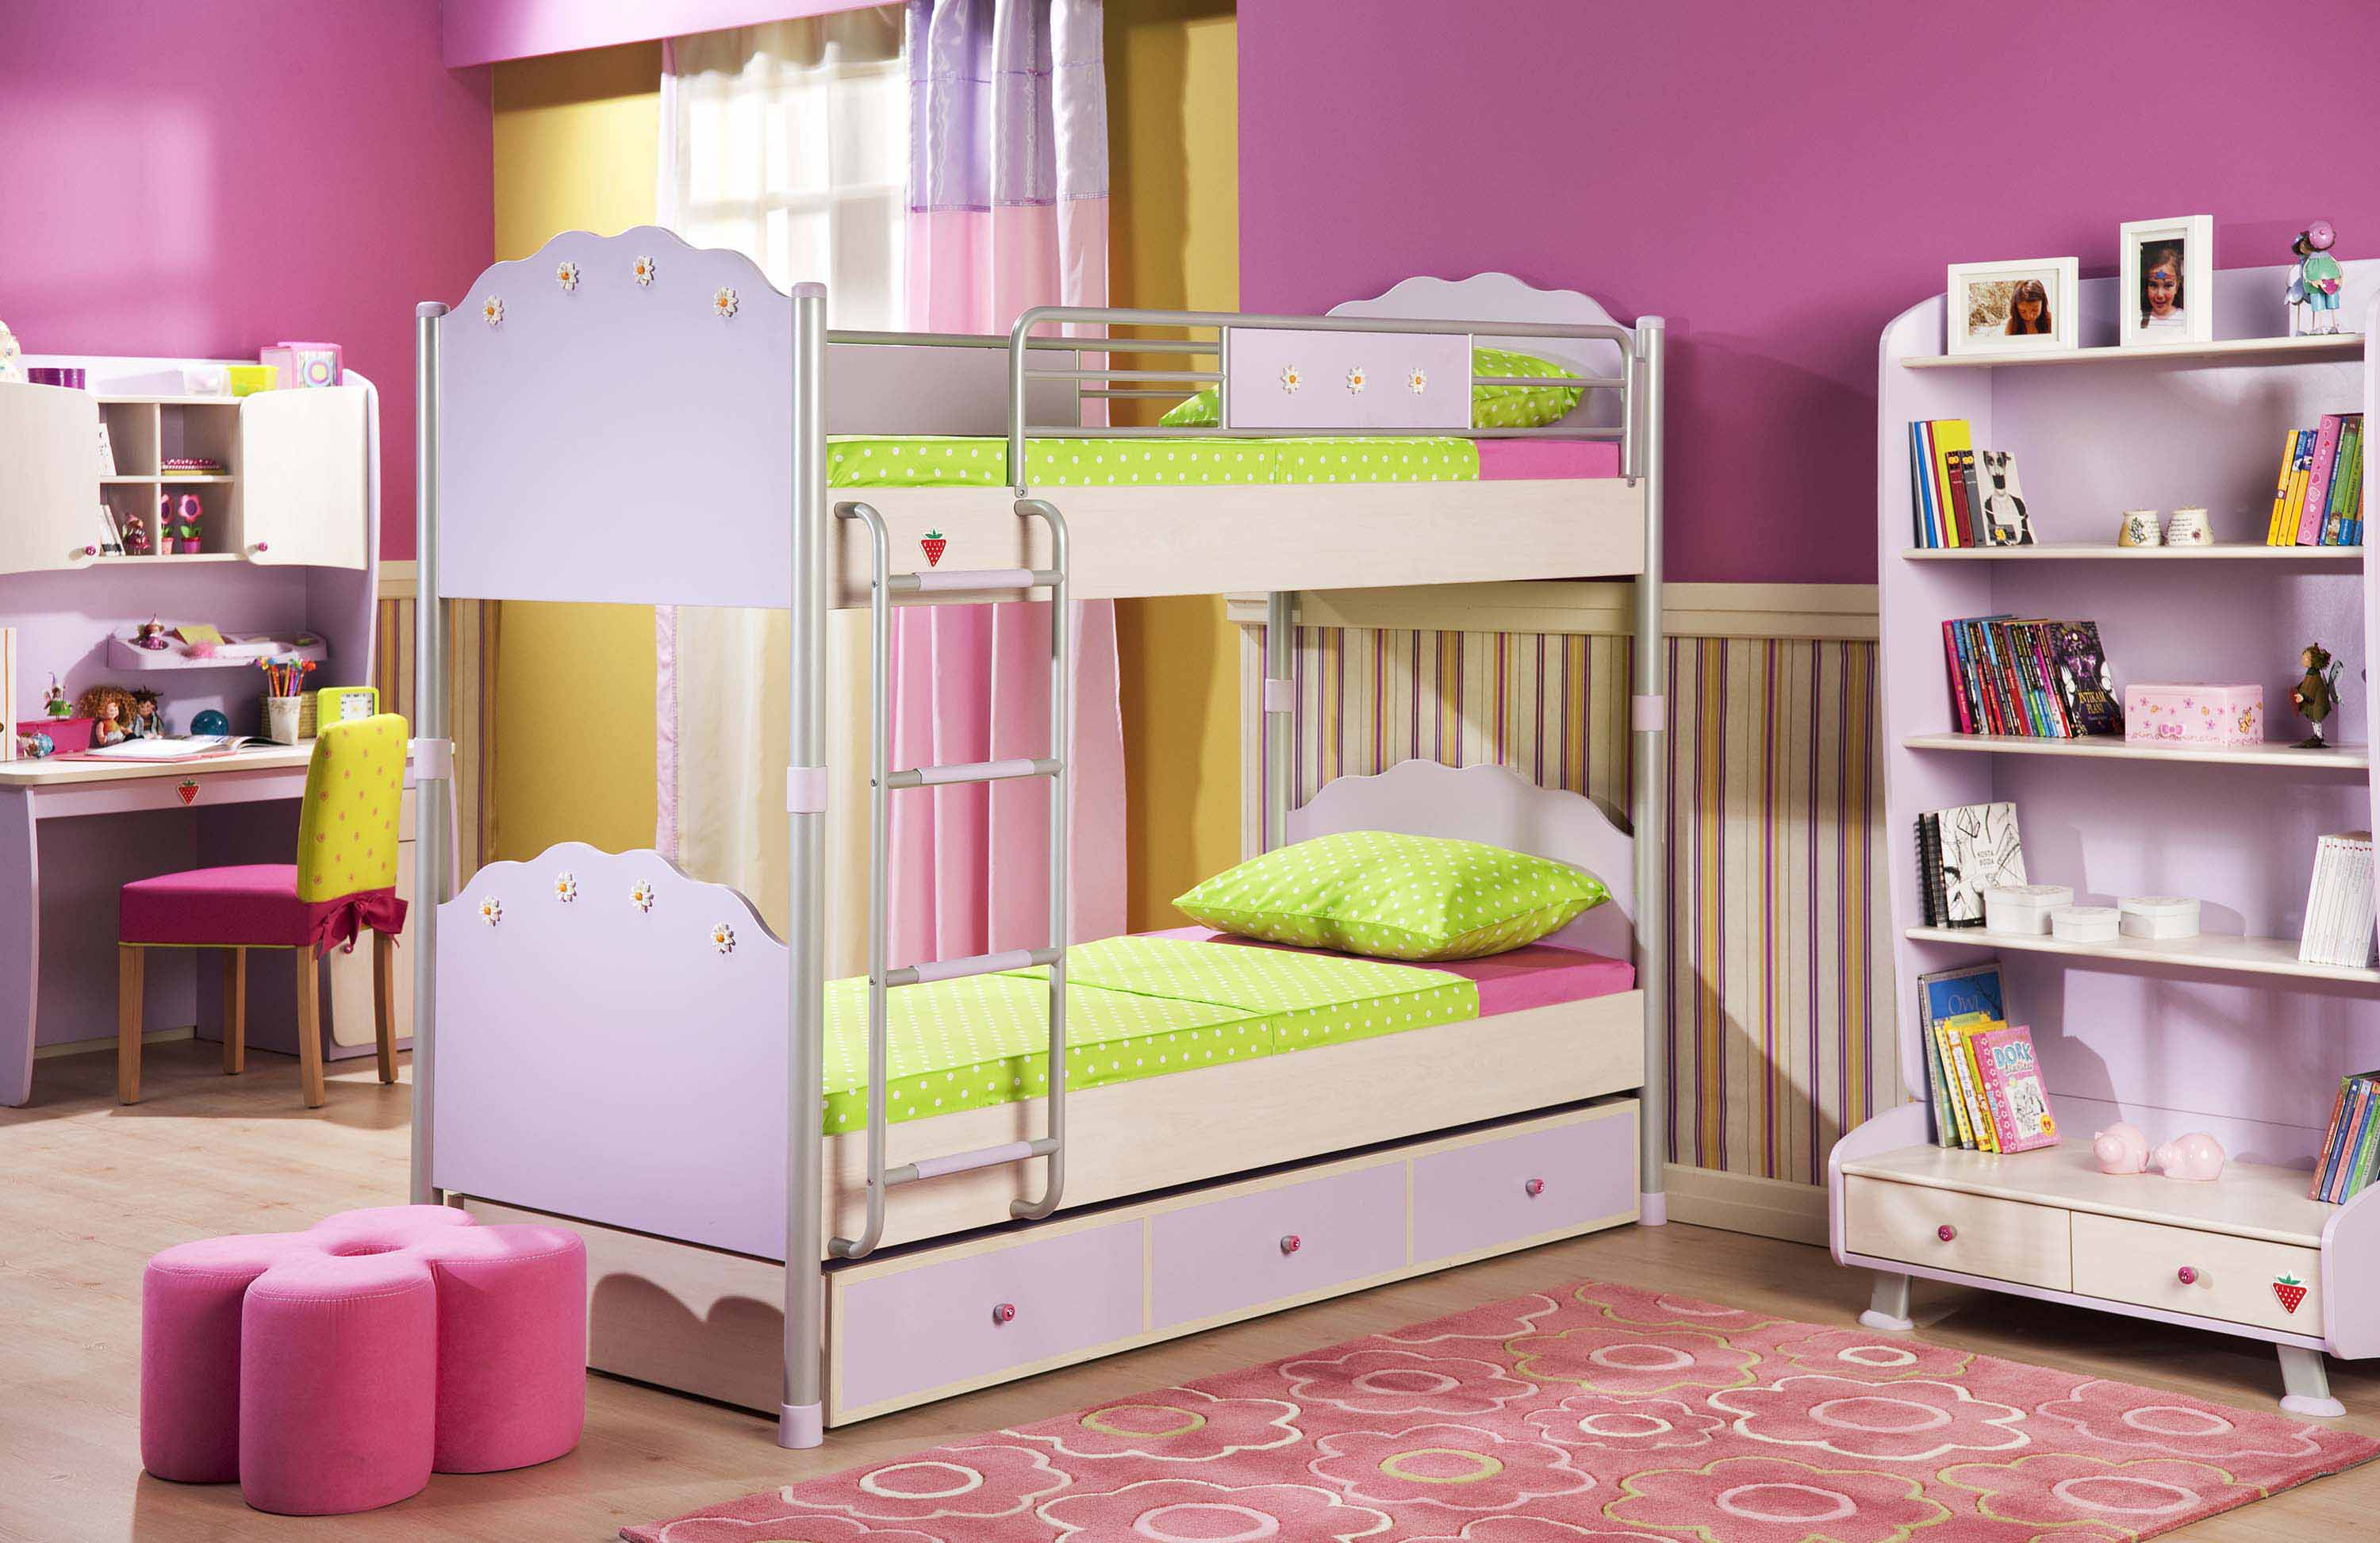 Solid wood bedroom furniture for kids 20 tips for best Best kids bedroom furniture